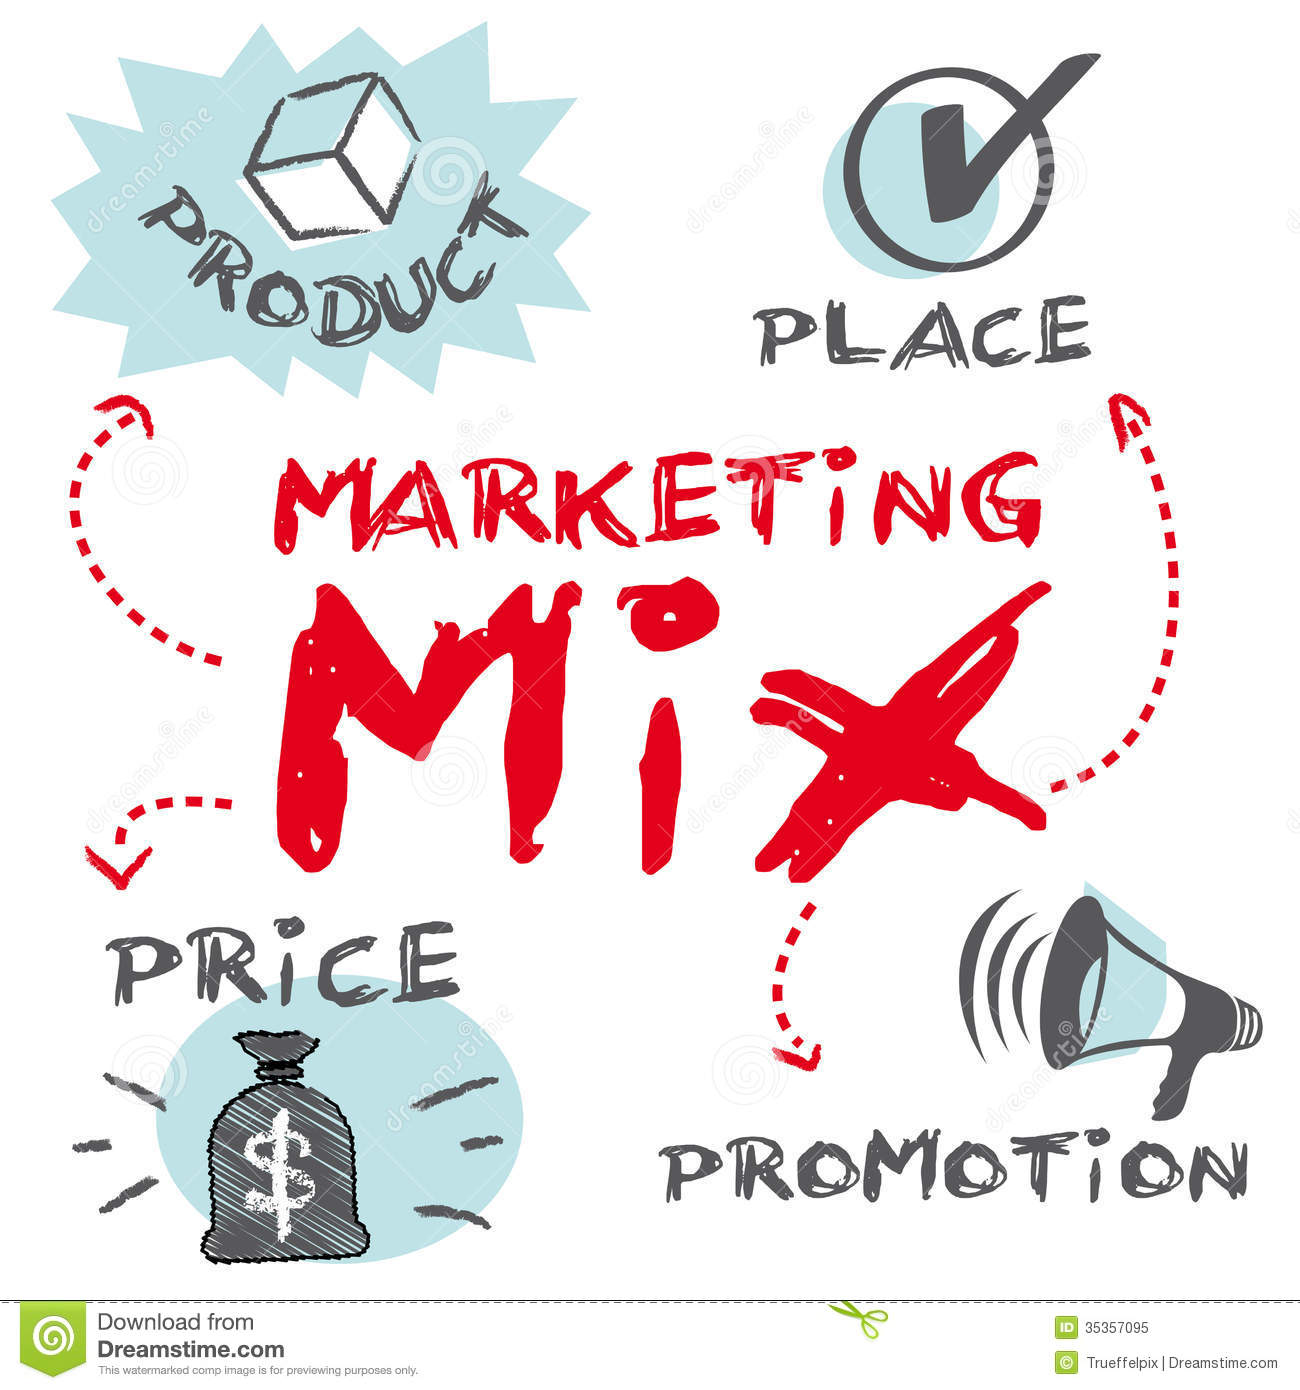 external image marketing-mix-product-place-promotion-price-infografic-business-tool-used-professionals-four-ps-35357095.jpg